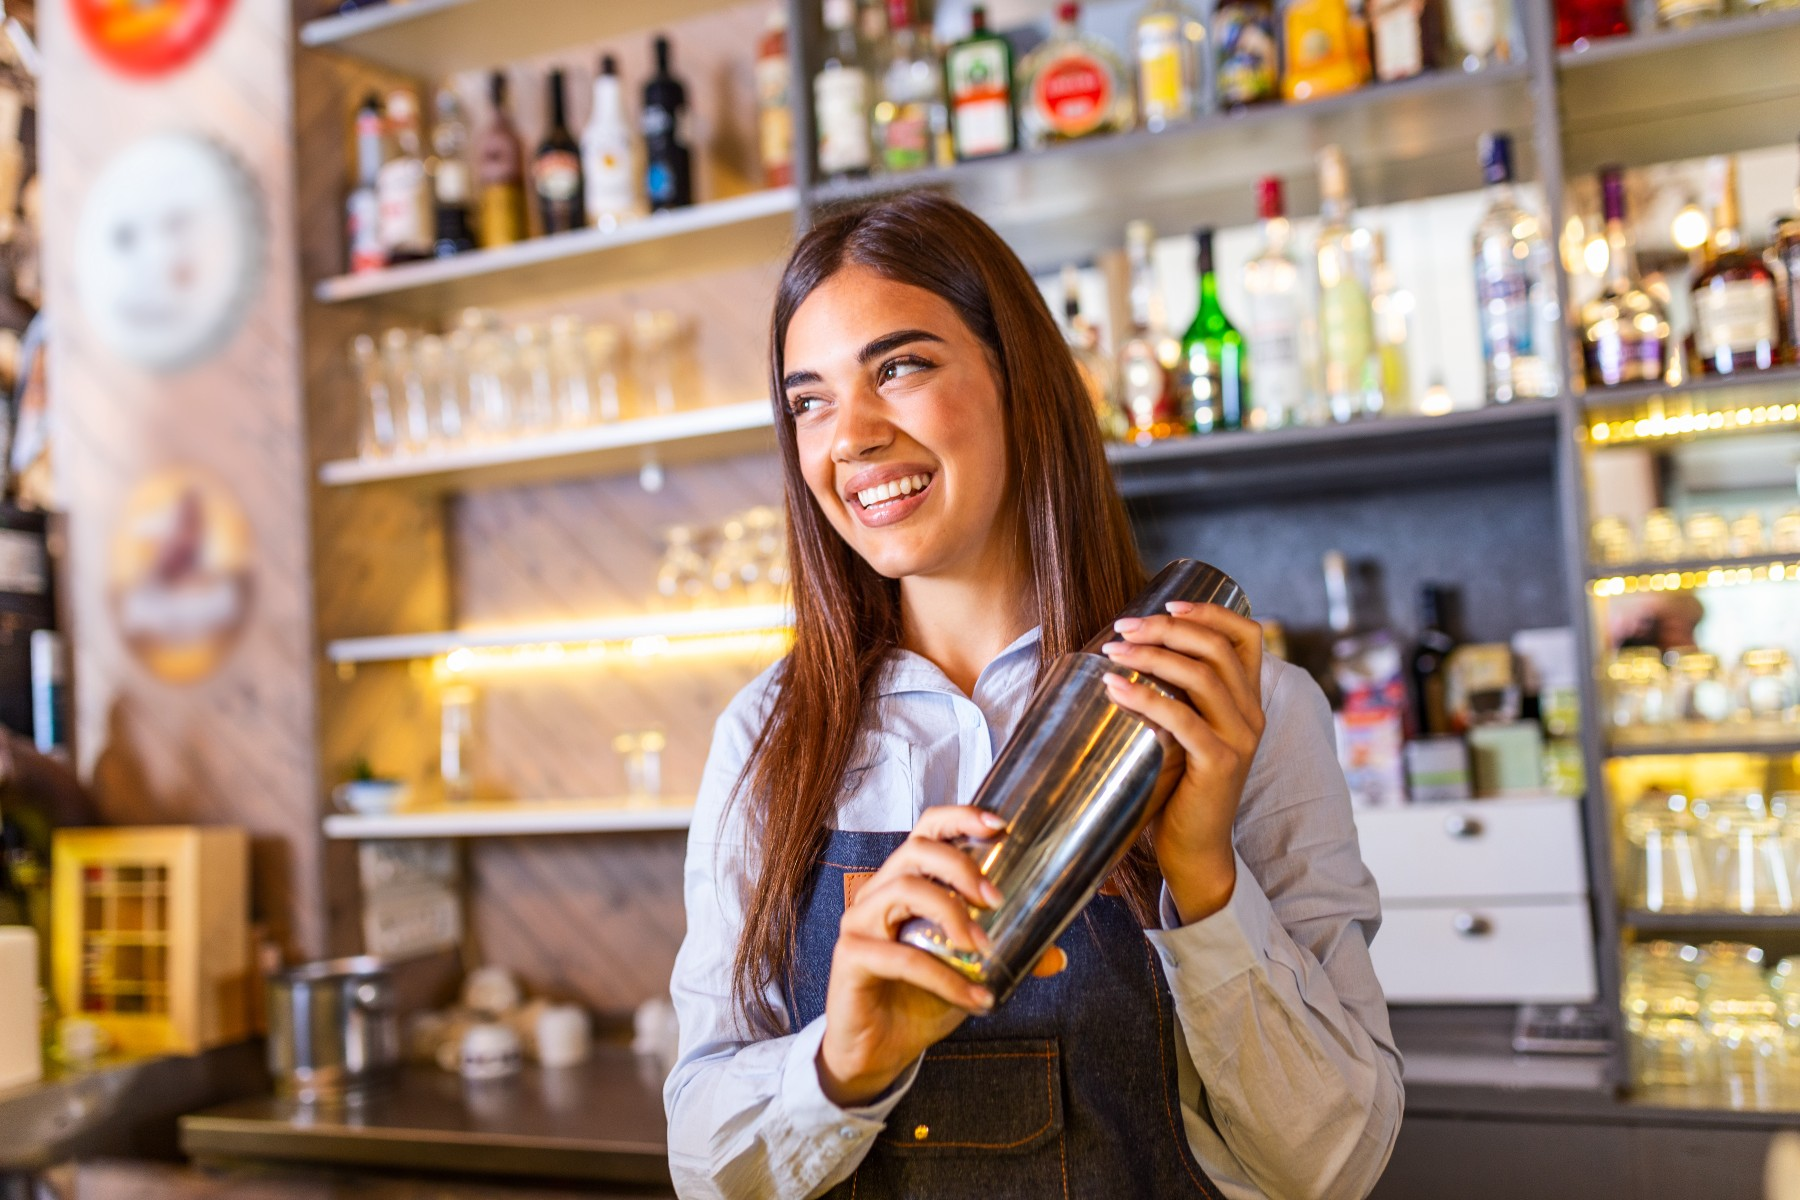 young woman service worker in Spain bar